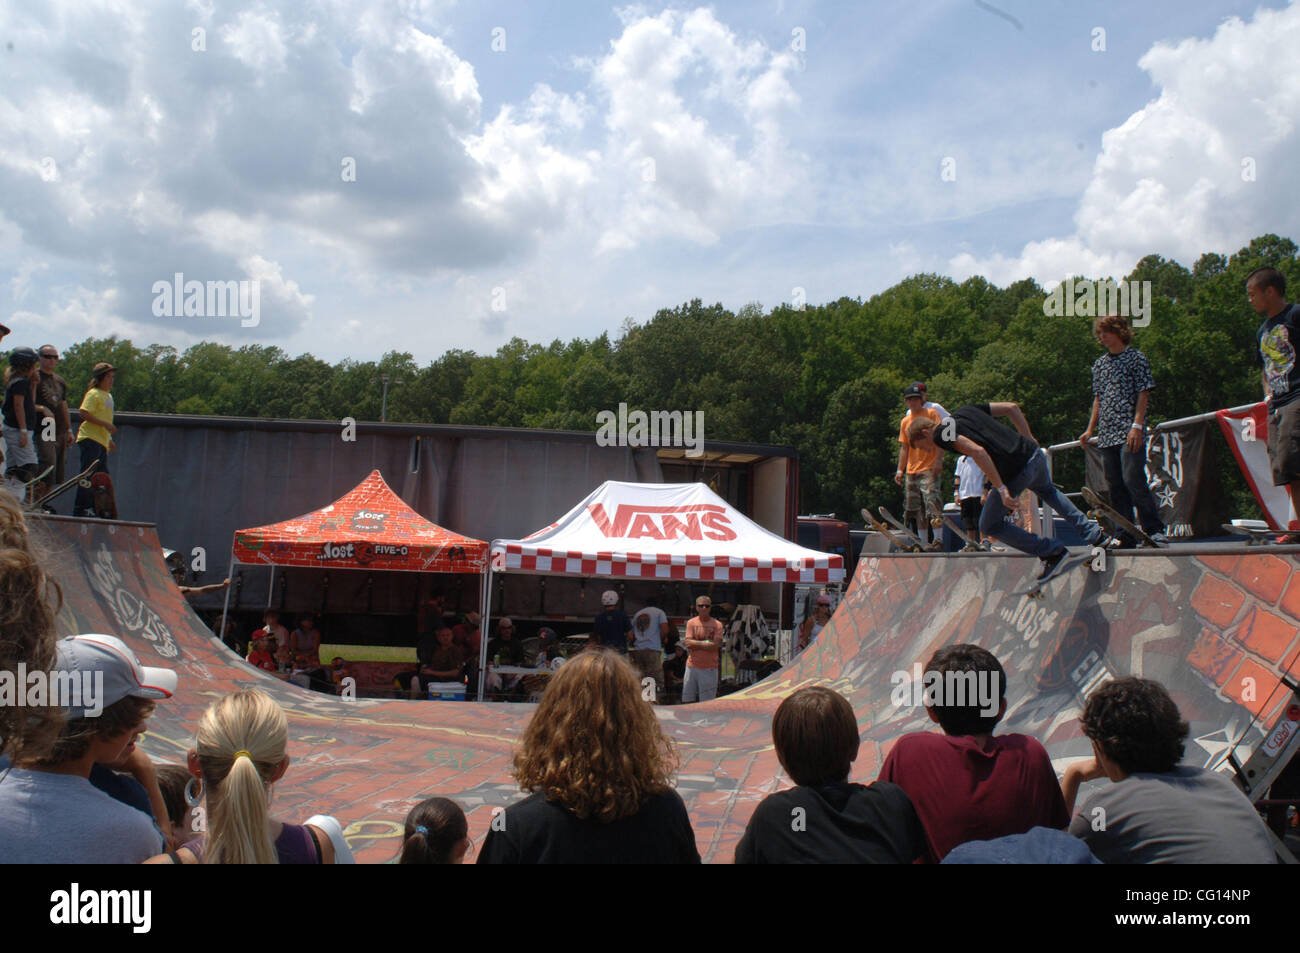 Jul 24, 2007 - Virginia Beach, VA, USA - Skaters at The Vans Warped Tour at the Verizon Virginia Beach Amphitheatre. - Stock Image